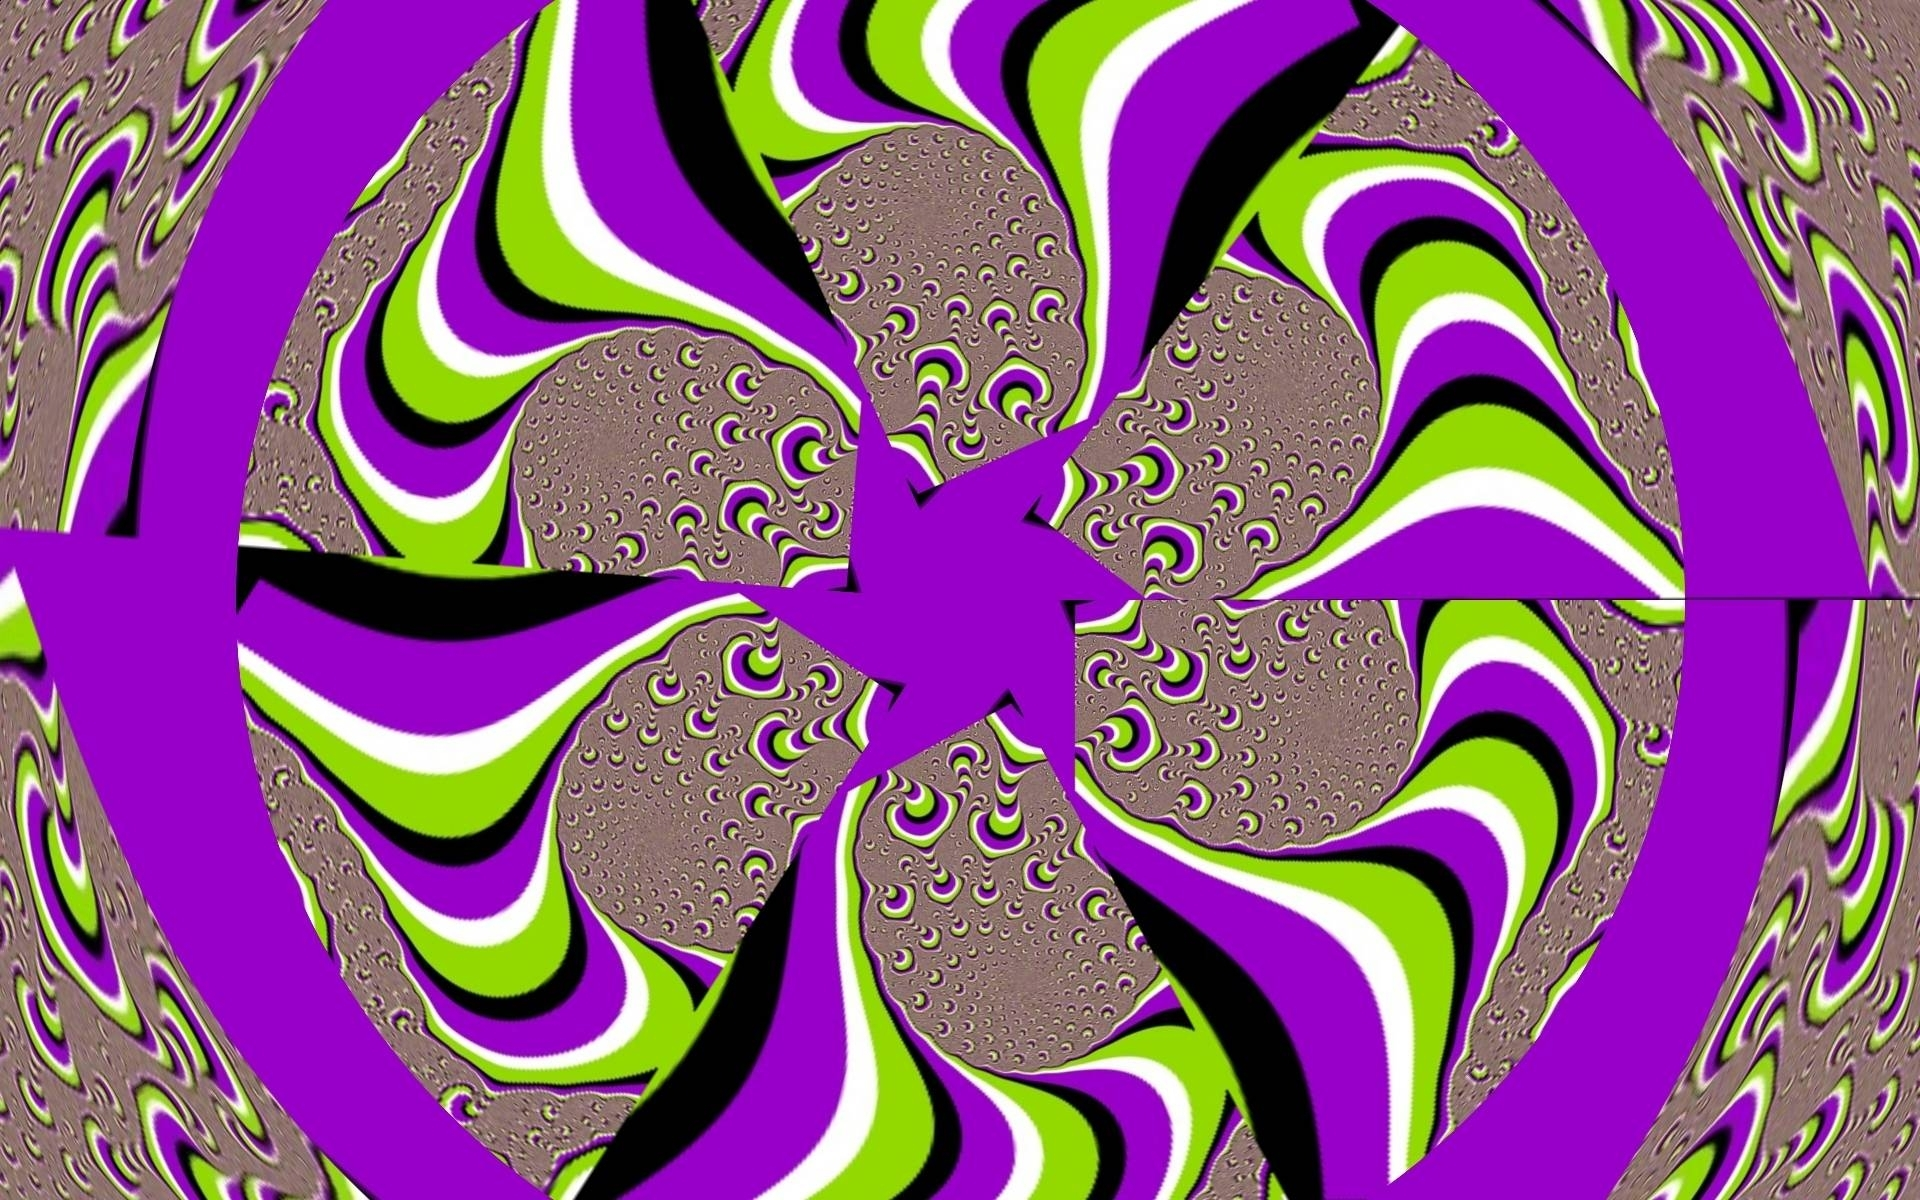 moving optical illusions wallpaper hd - free android application